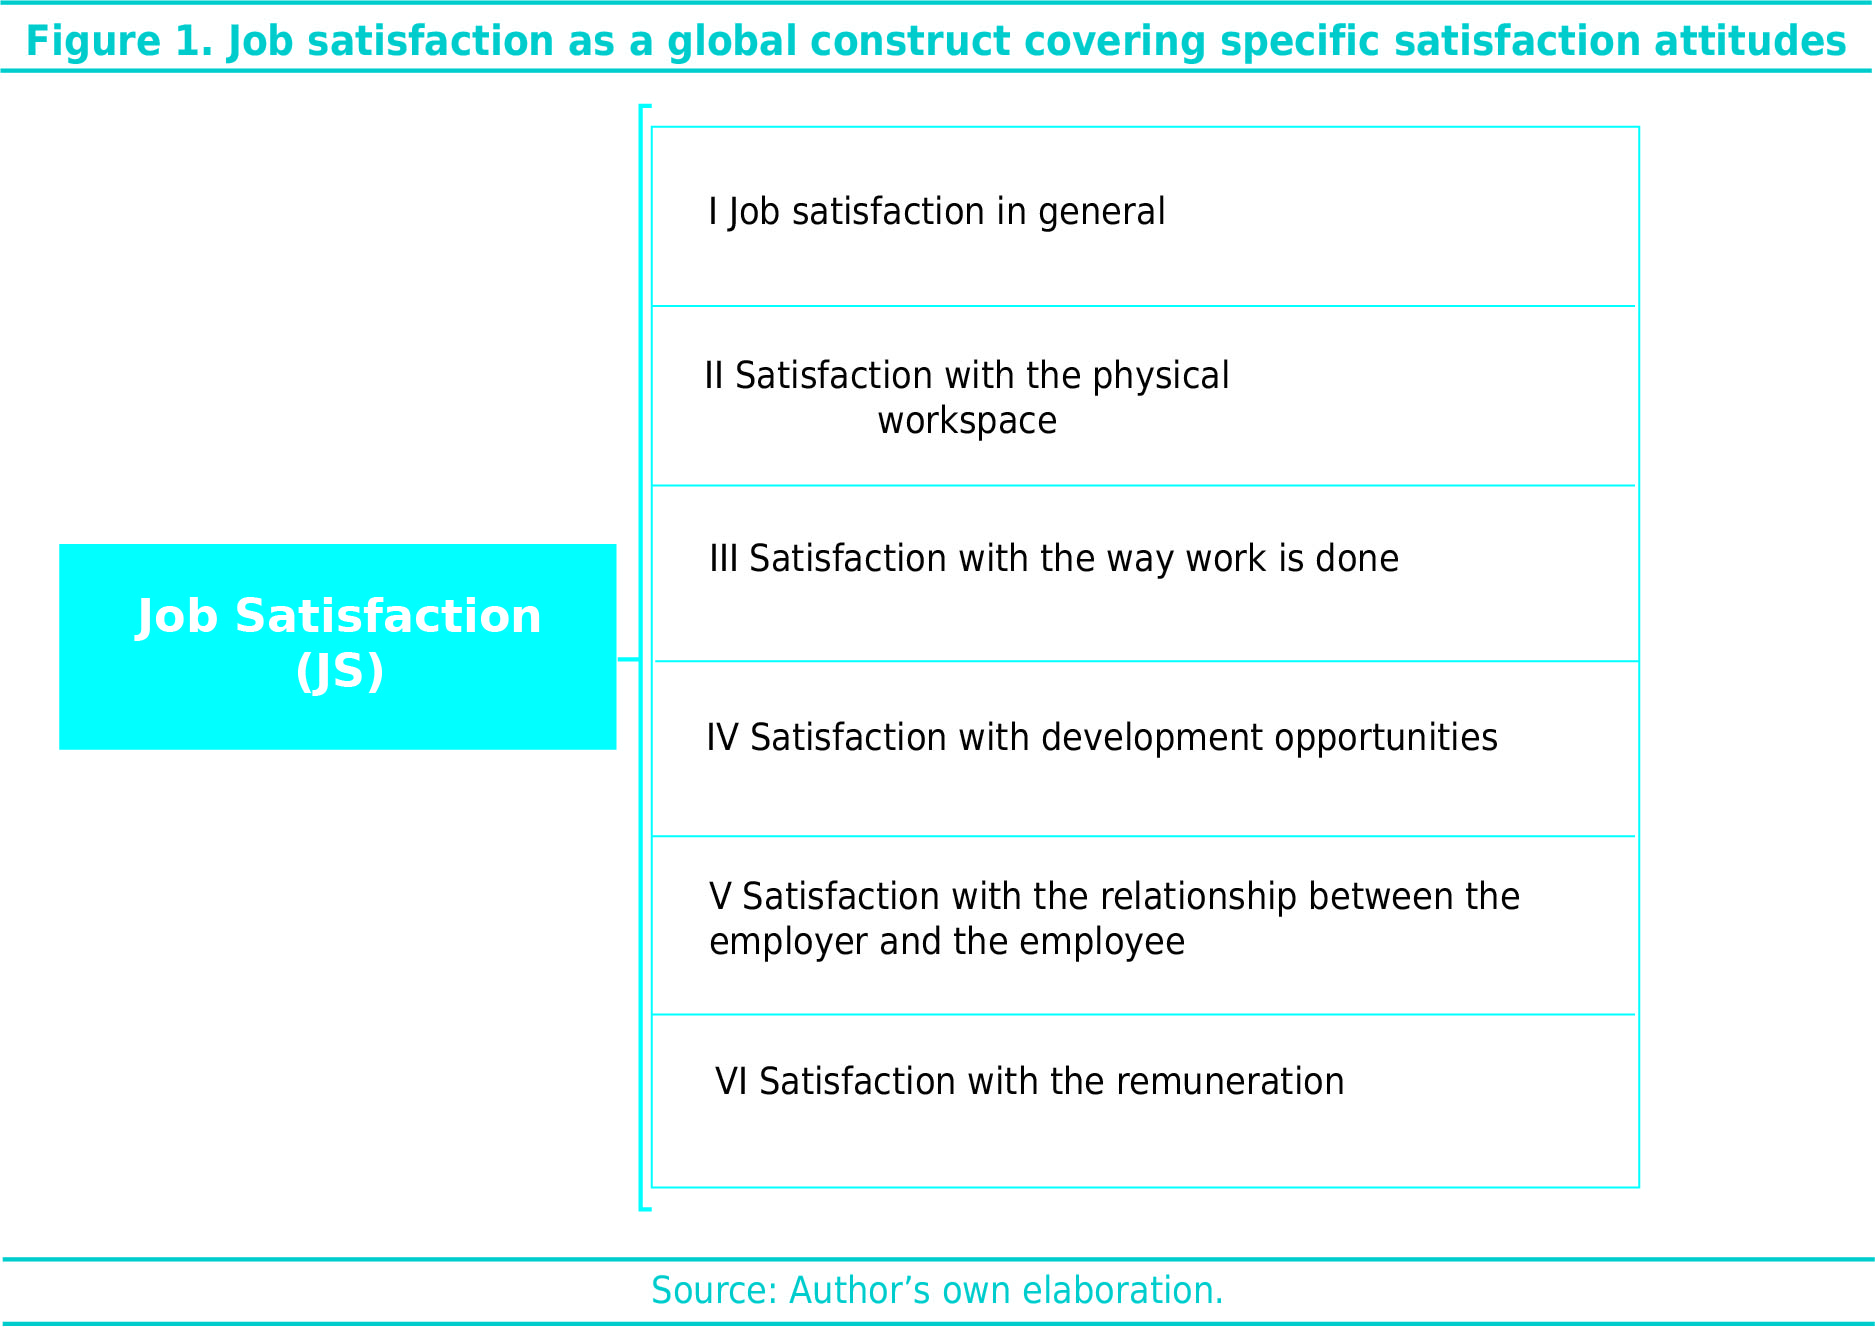 Job satisfaction as a global construct covering specific satisfaction attitudes